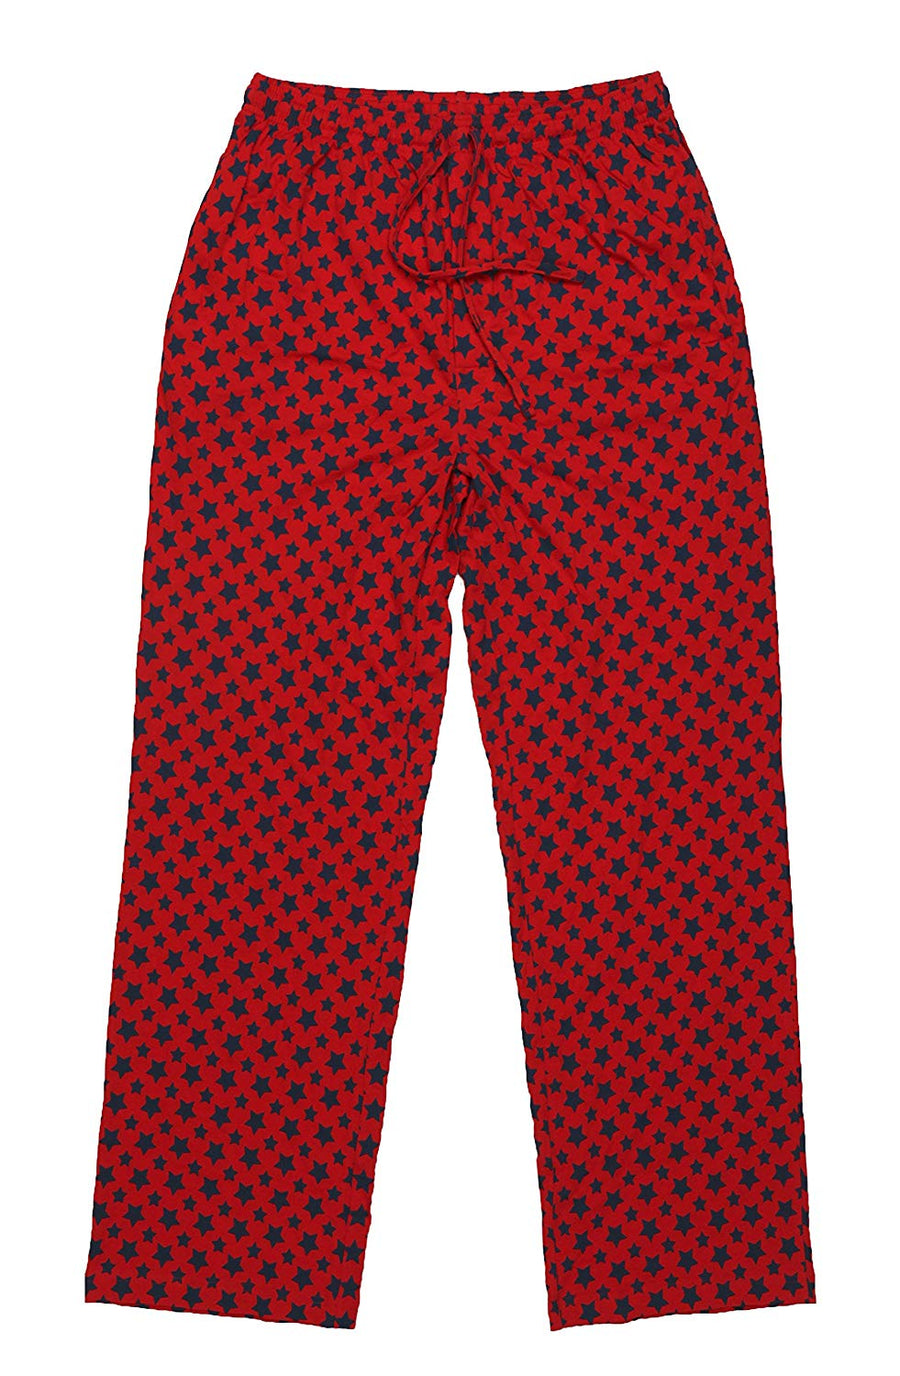 CYZ Women's Cotton Stretch Knit Pajamas Jogger Pants/Lounge Pants